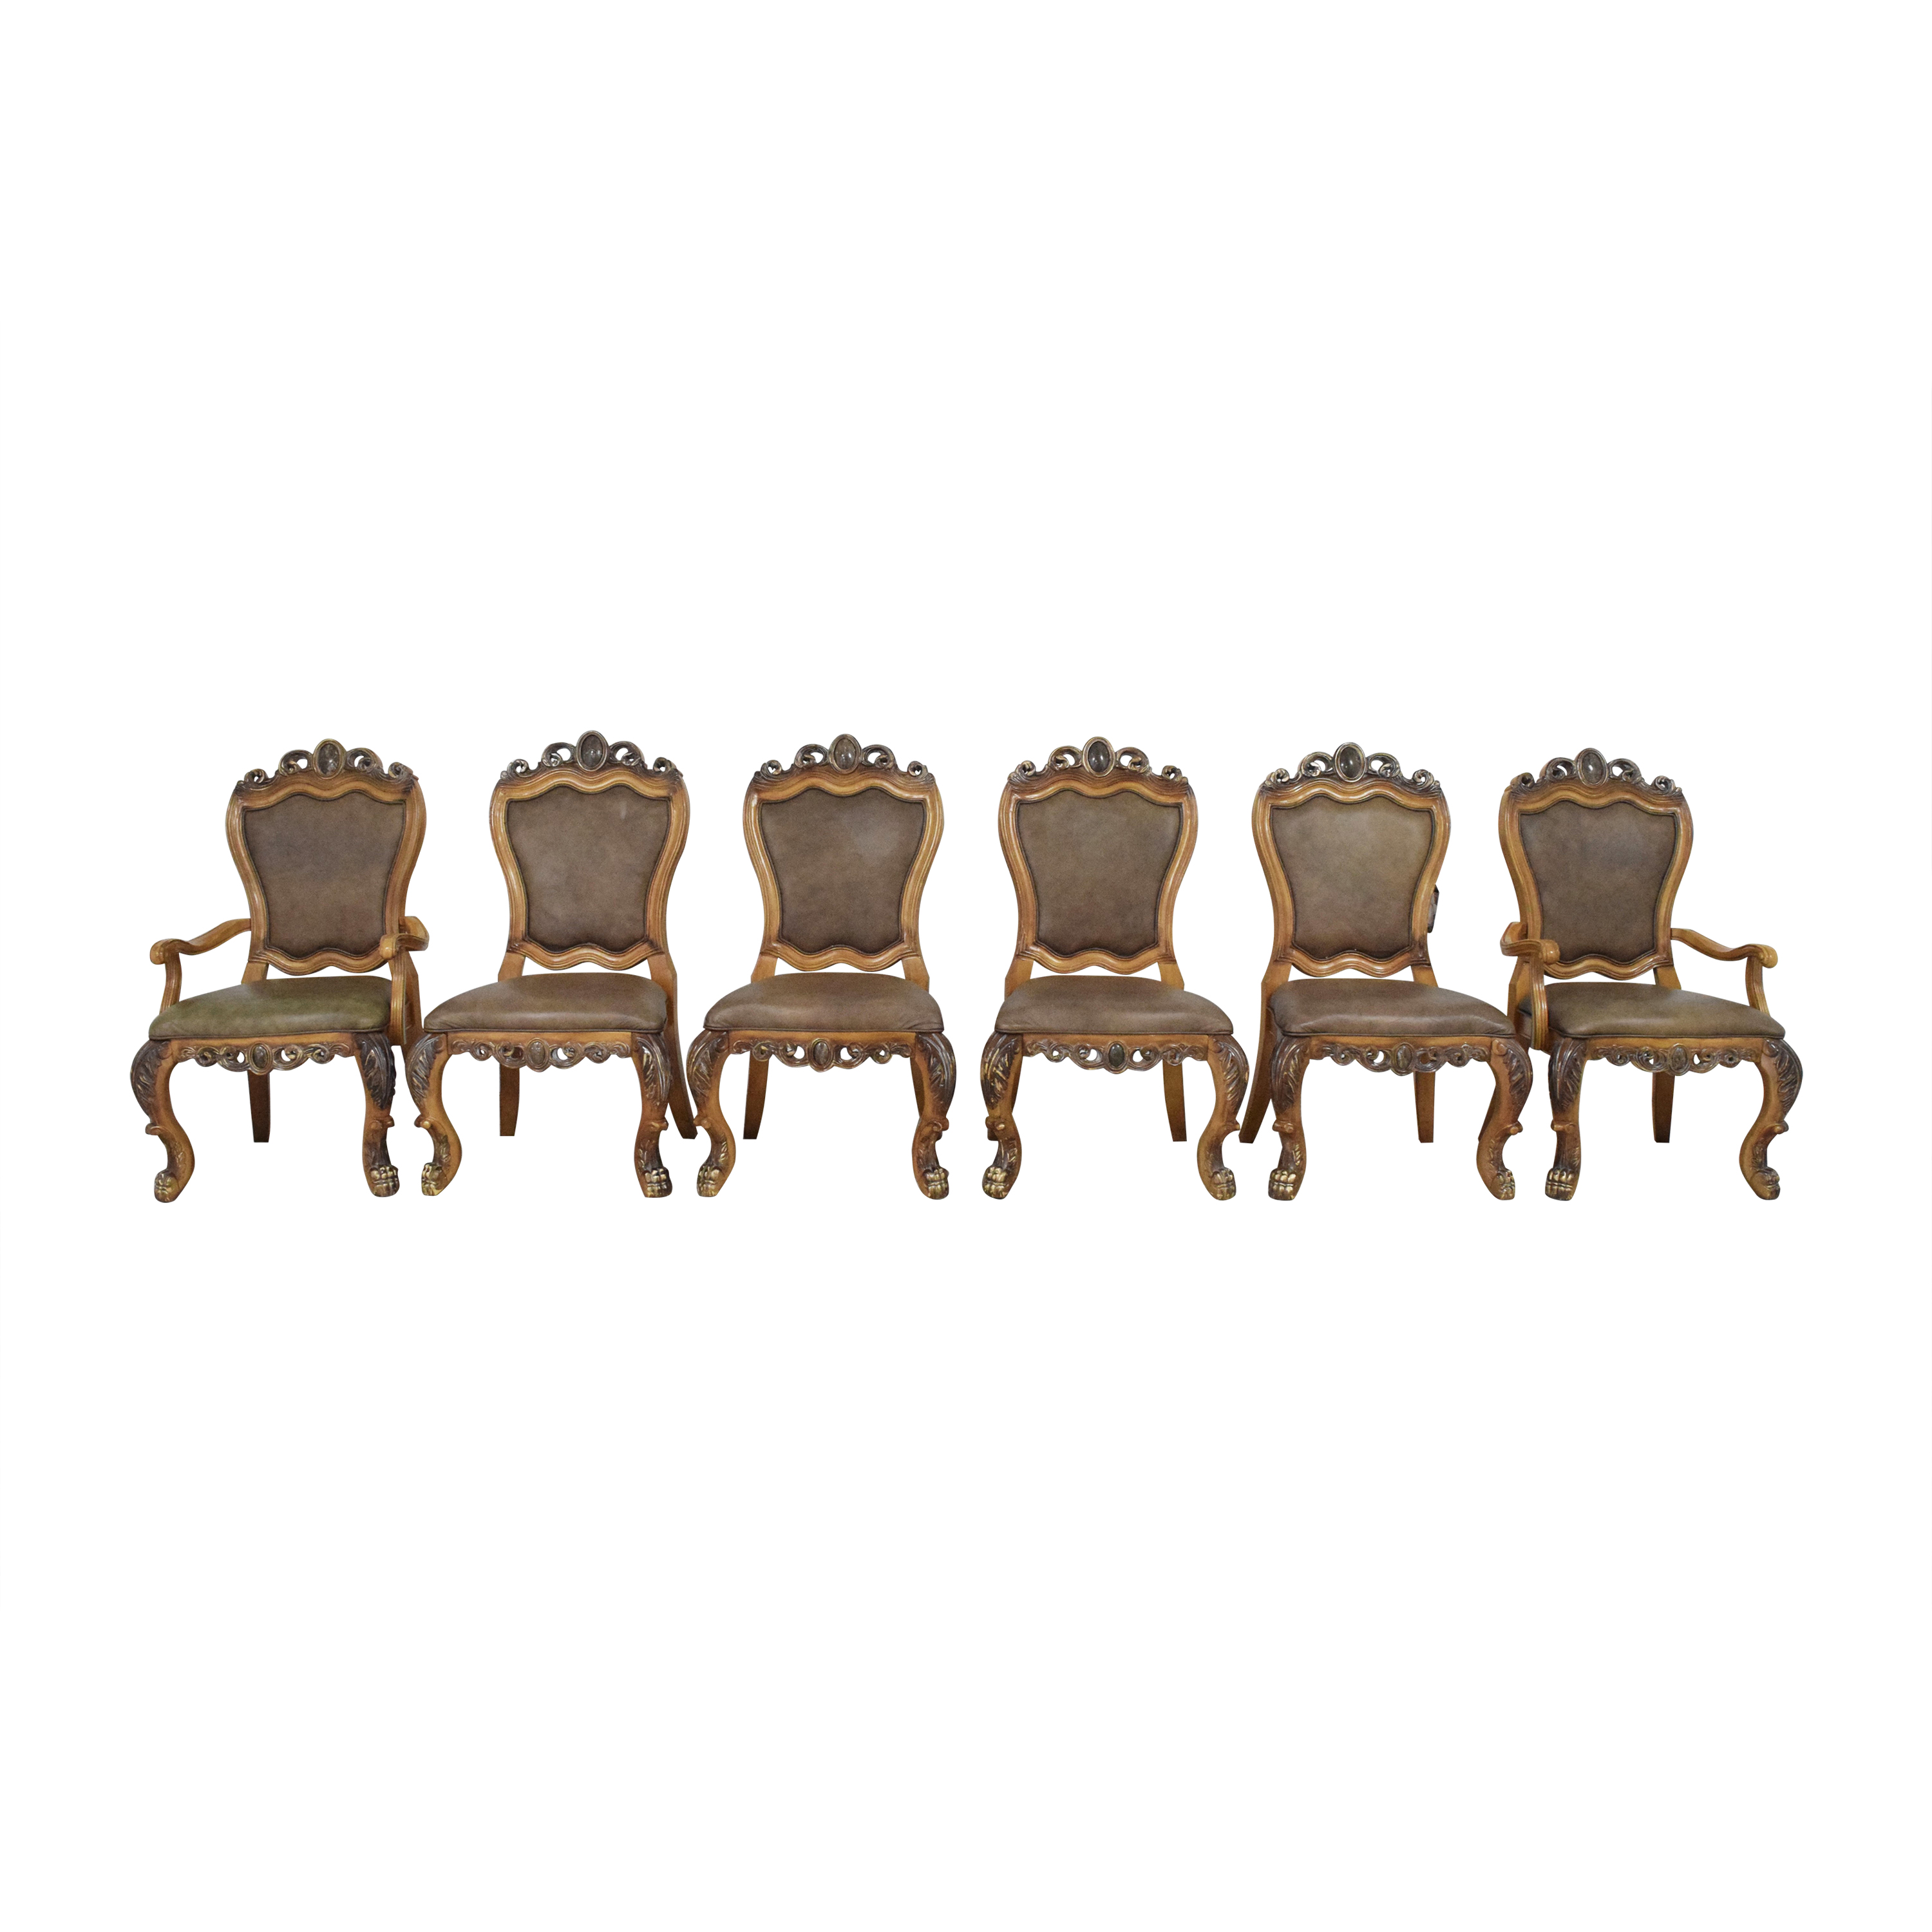 shop Collezione Europa Carved Dining Chairs Collezione Europa Dining Chairs